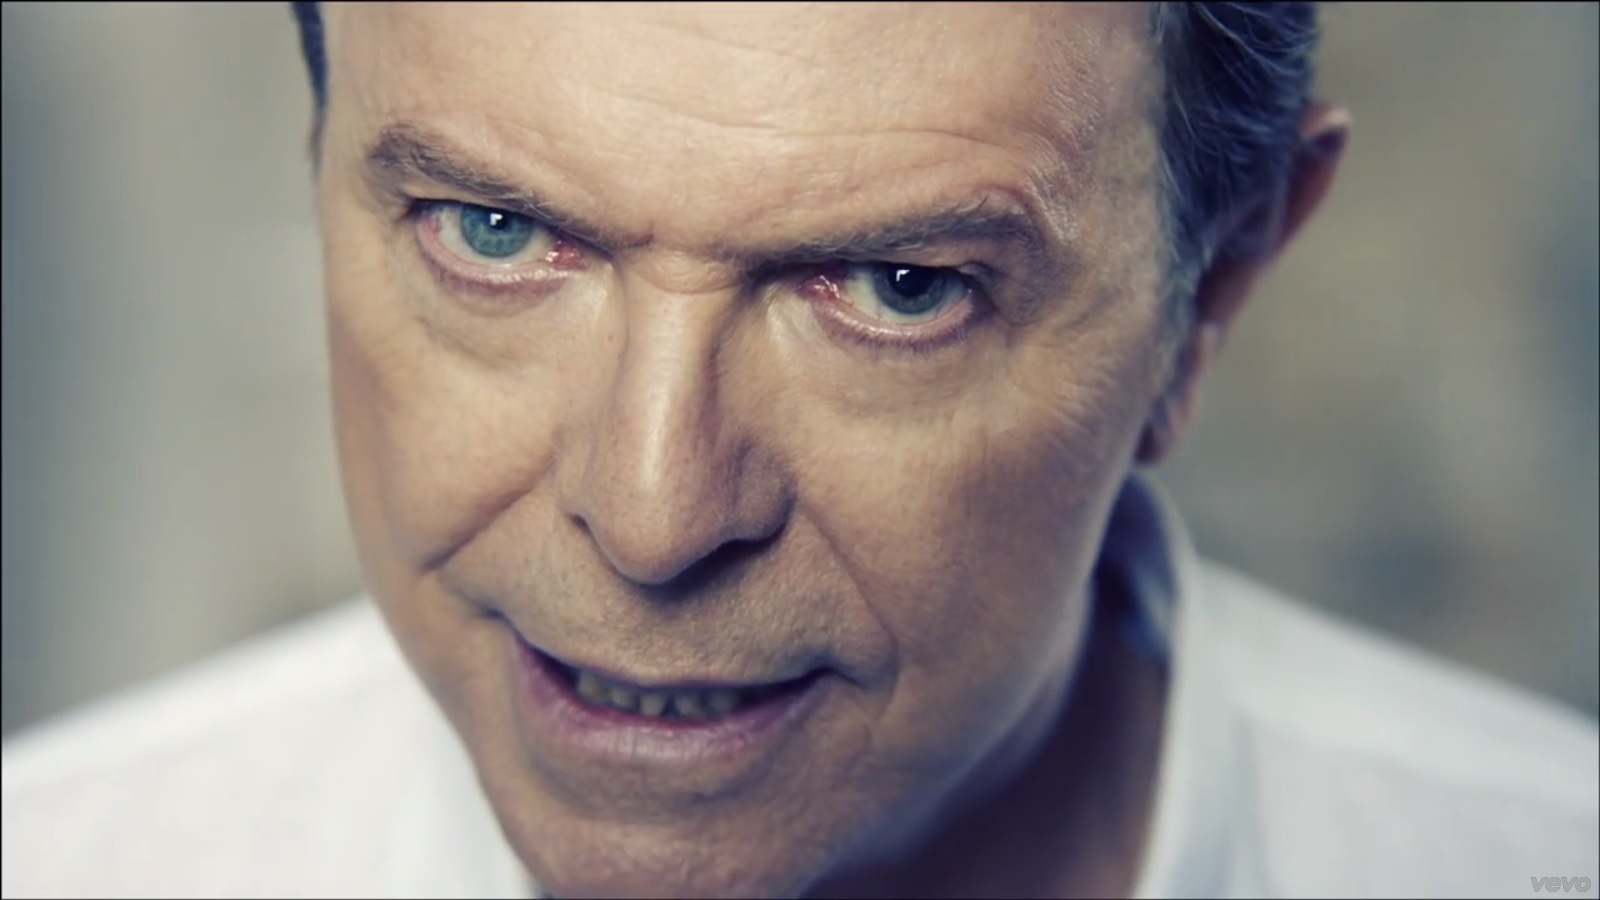 David Bowie recorded a new single this summer, and it has been played for the first time on BBC 6 Music earlier today (October 12).